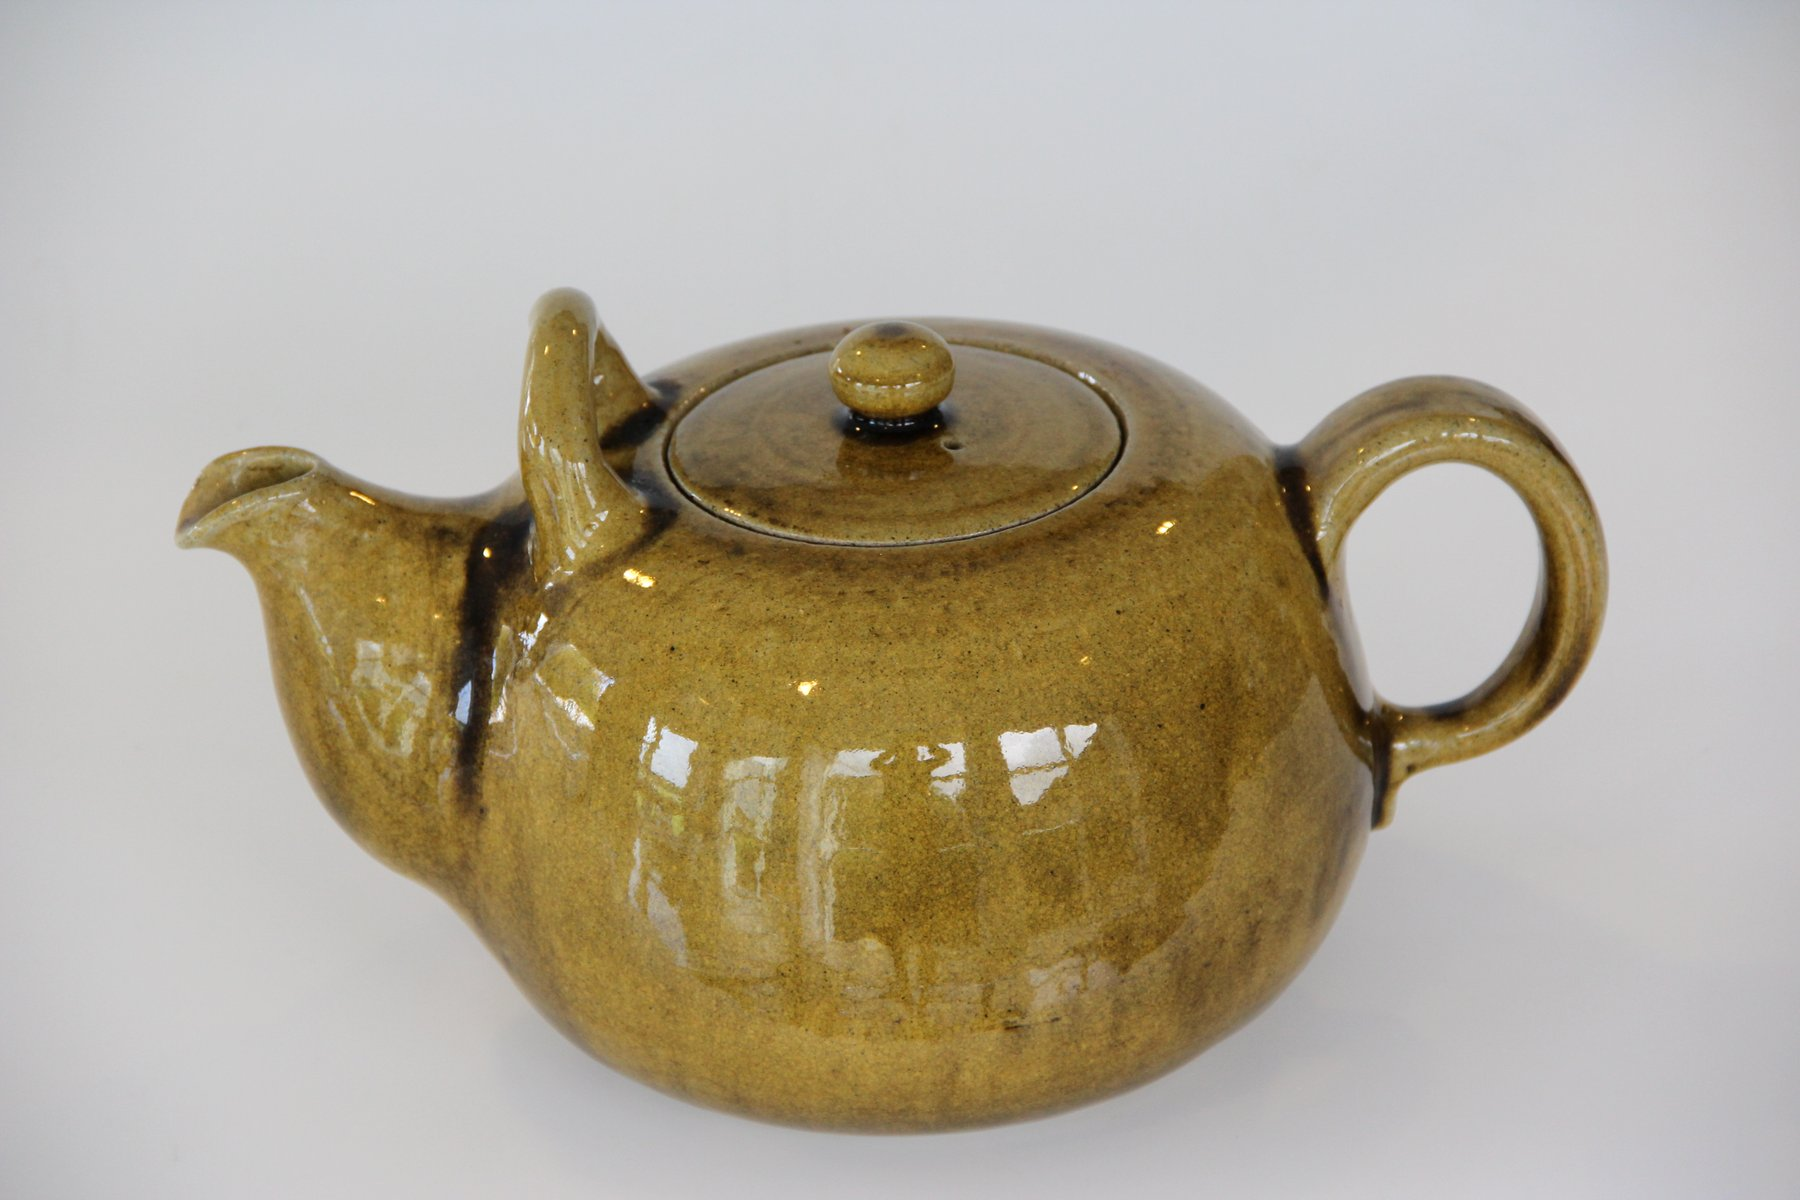 Vintage Danish Teapot by Nils Kähler for HAK for sale at Pamono